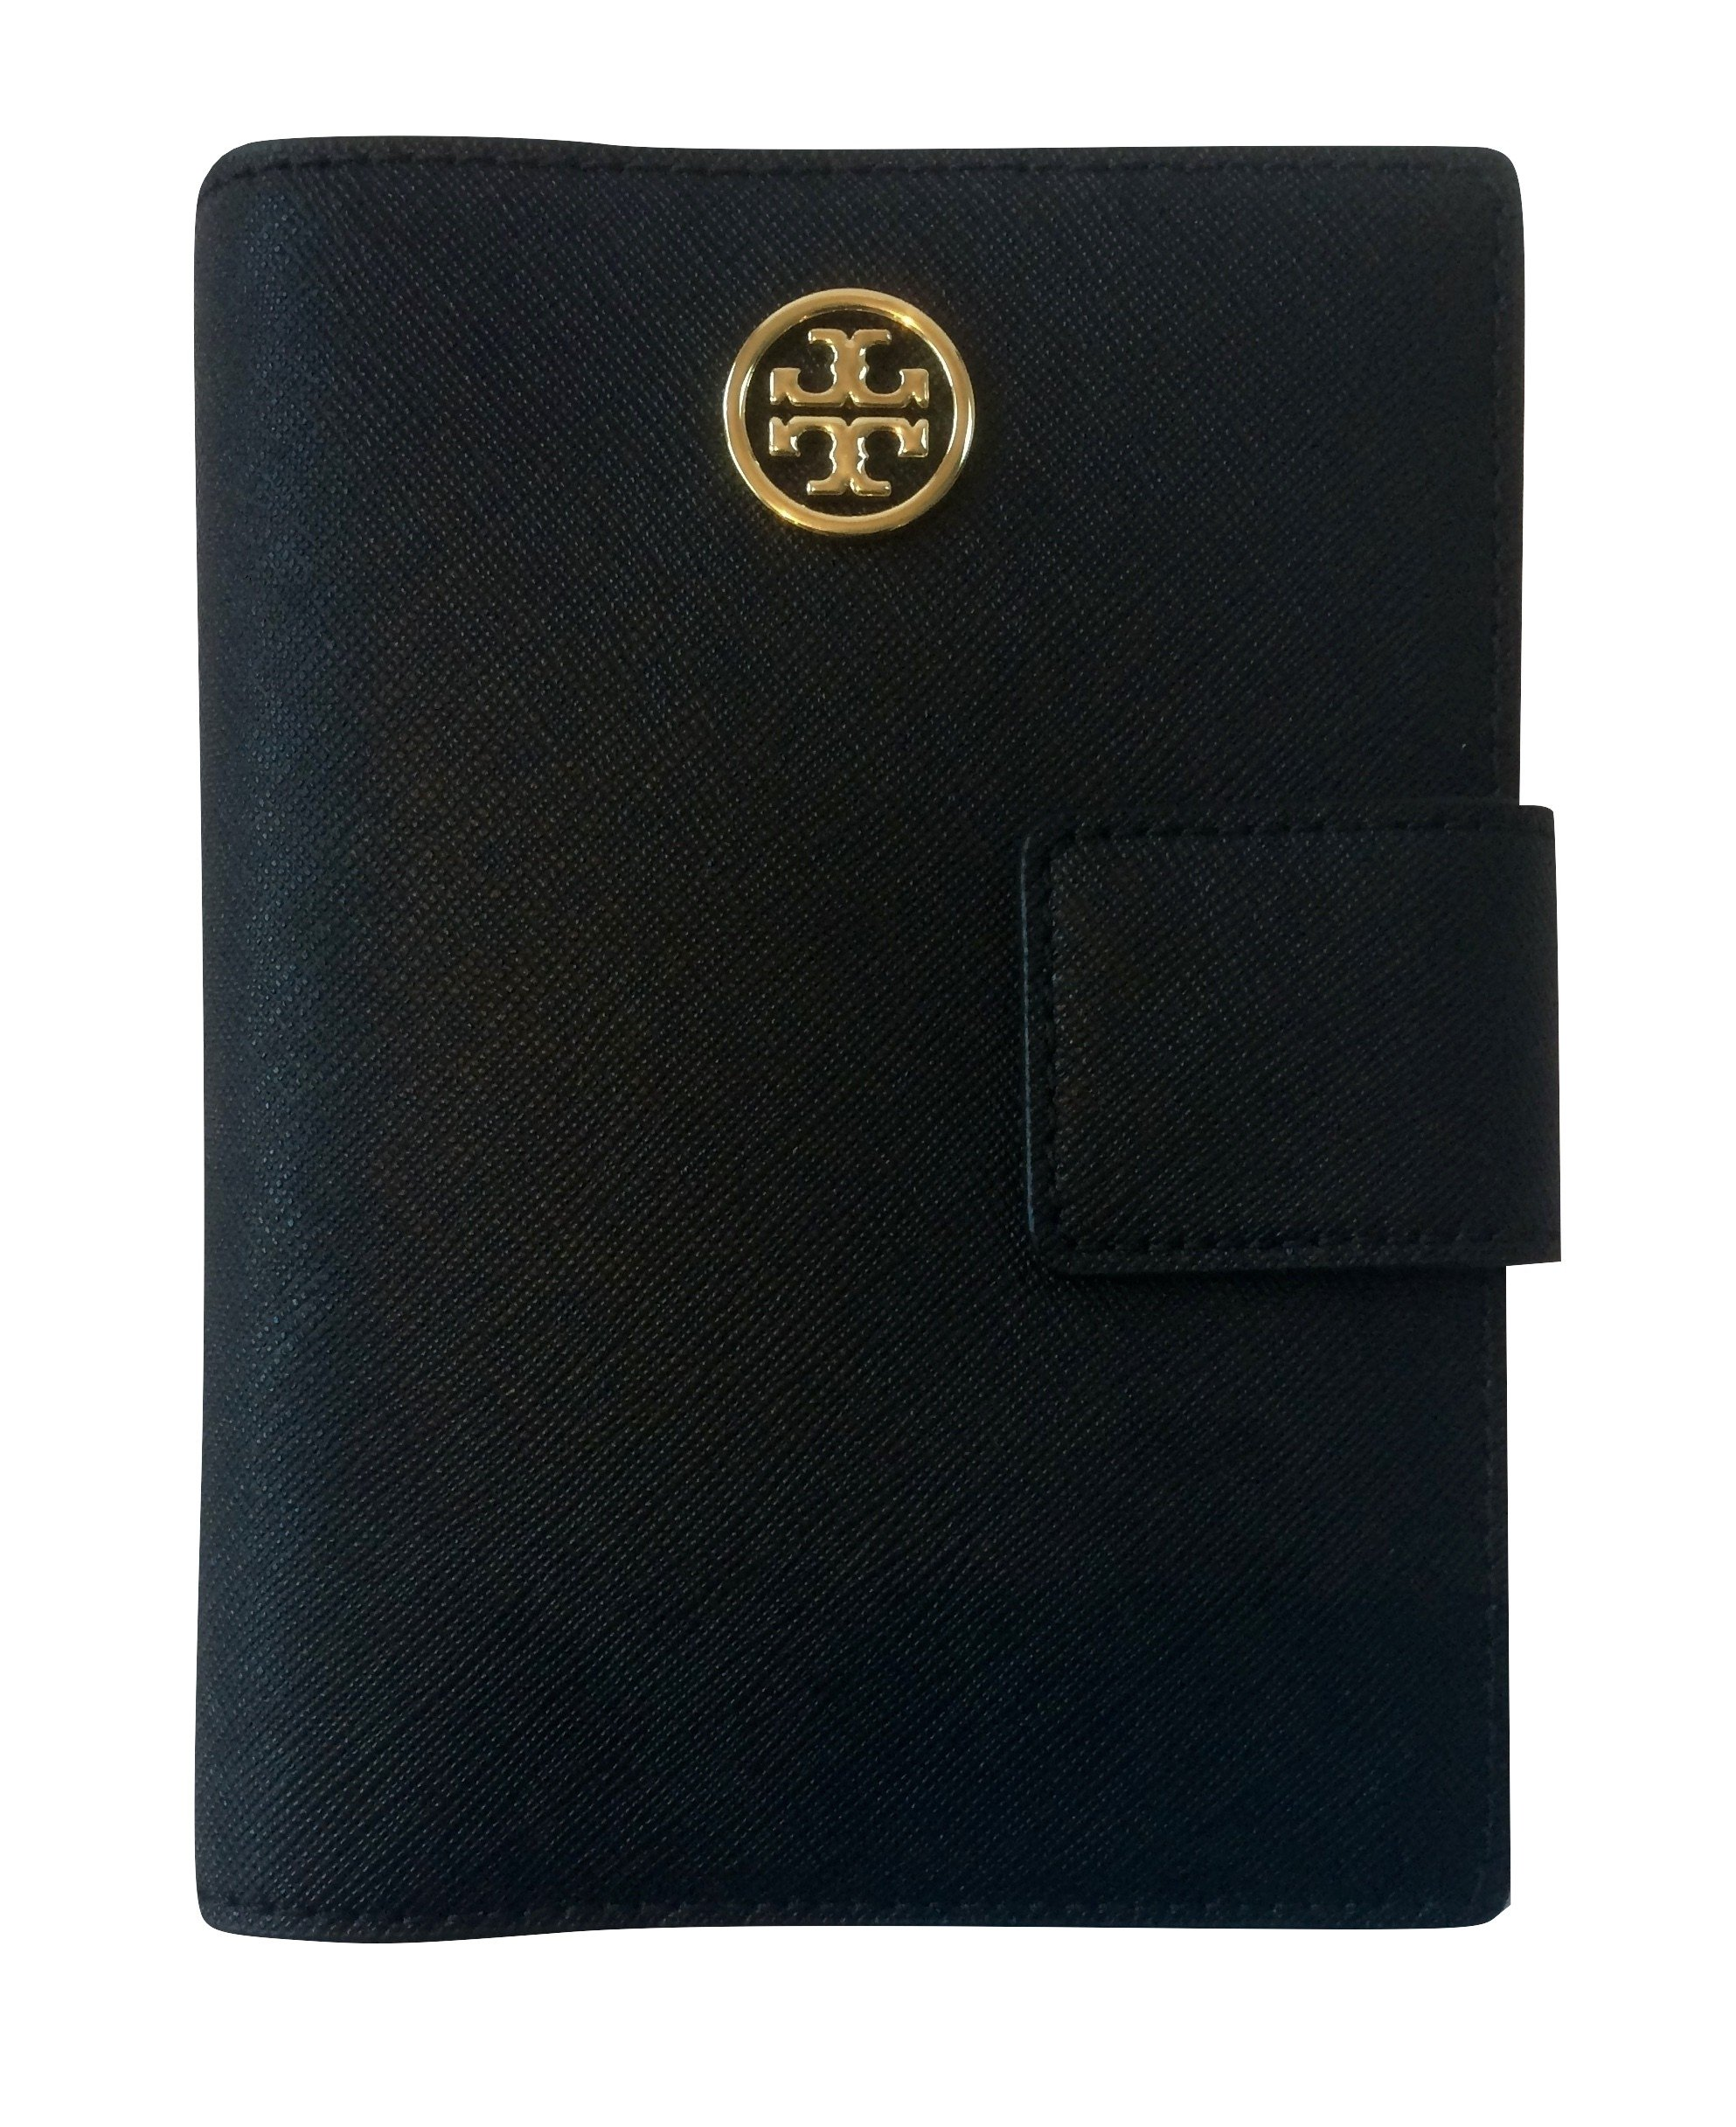 Tory Burch Robinson Snap Passport Holder in Saffiano Leather (Black) by Tory Burch